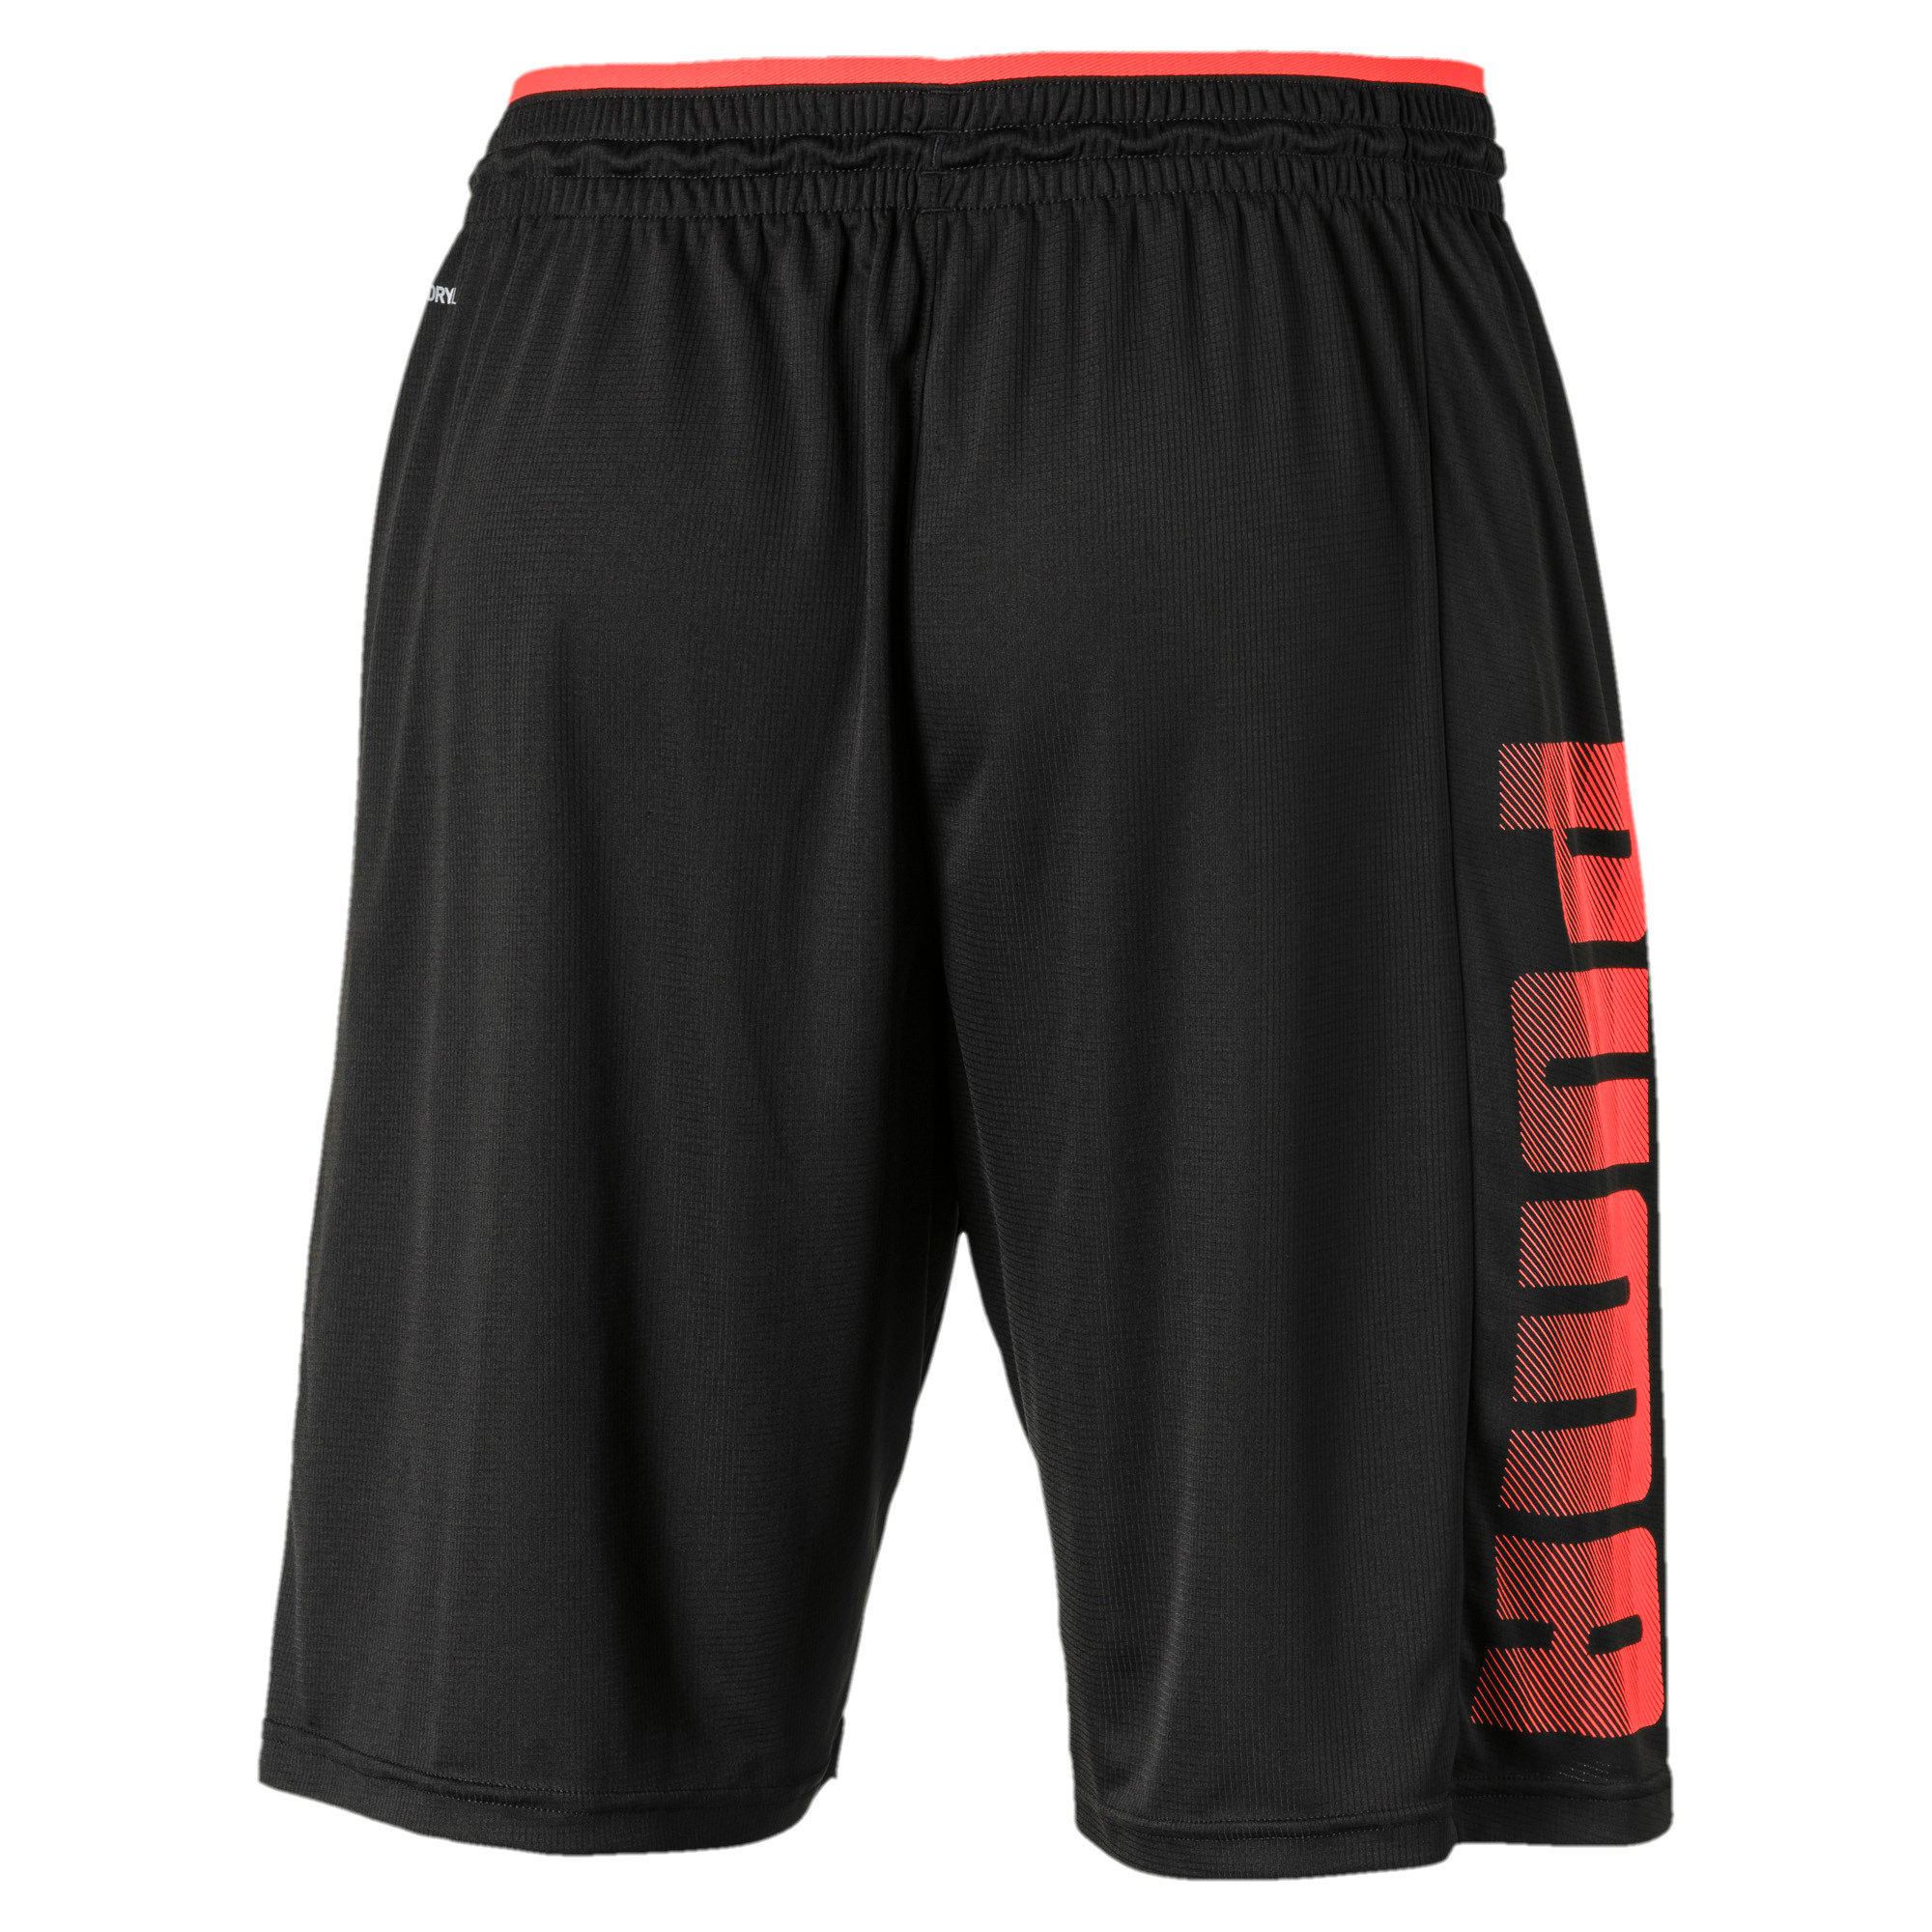 Thumbnail 5 of Collective Knitted Men's Training Shorts, Puma Black-Nrgy Red, medium-IND